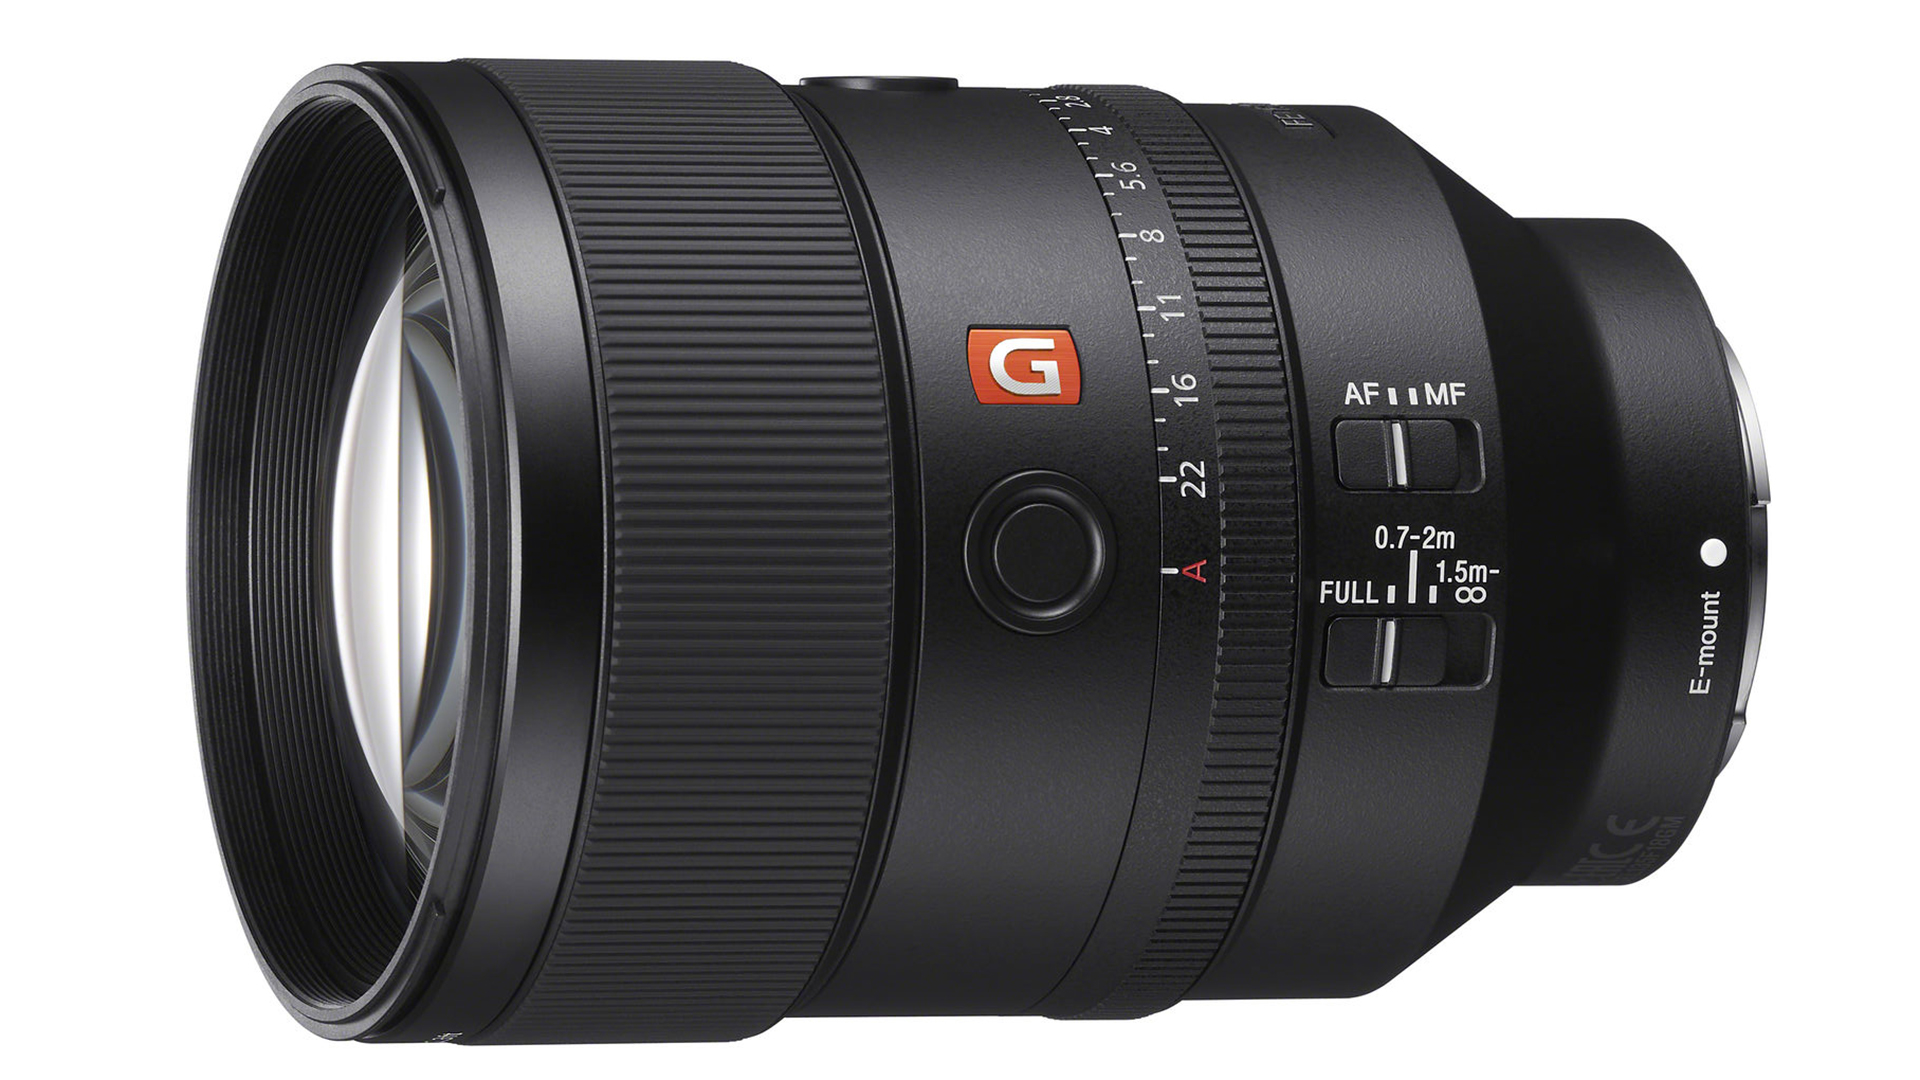 Anuncian Lente Sony FE 135mm f/1.8 GM